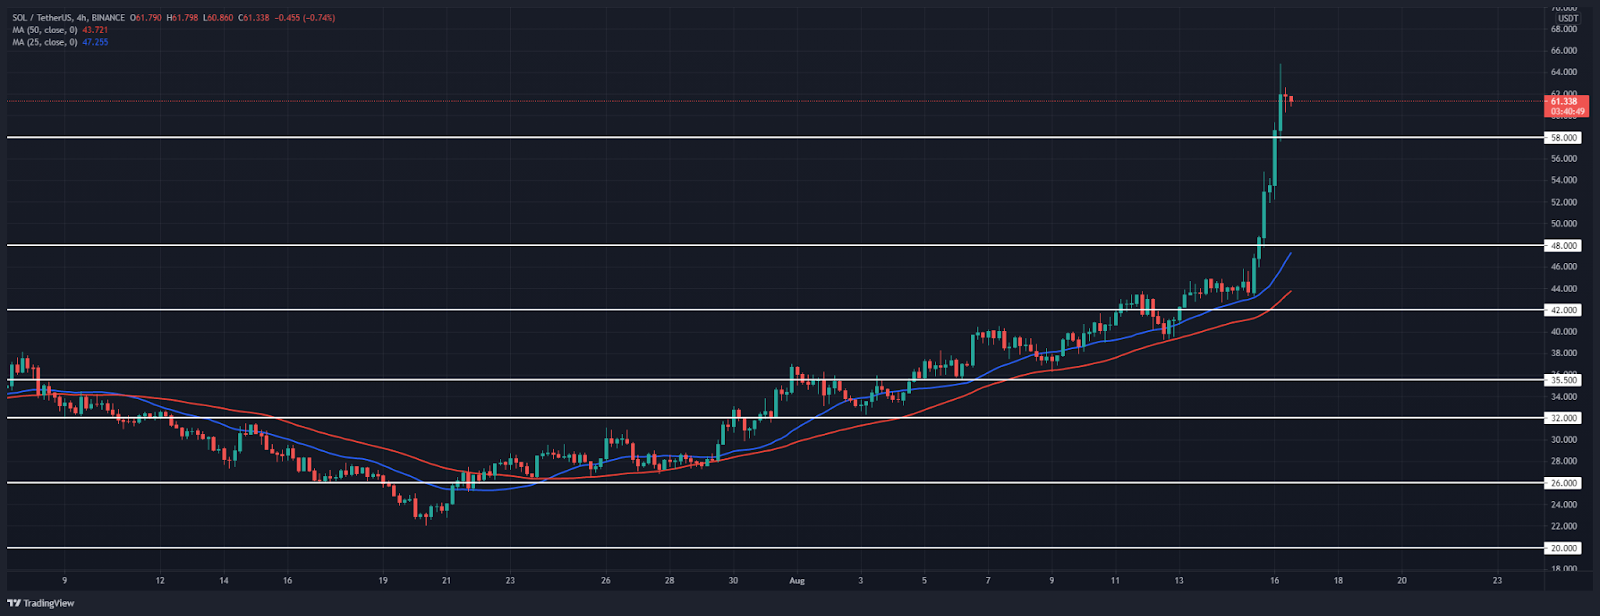 Solana Price Analysis: SOL spikes to a new all-time high at $64.8